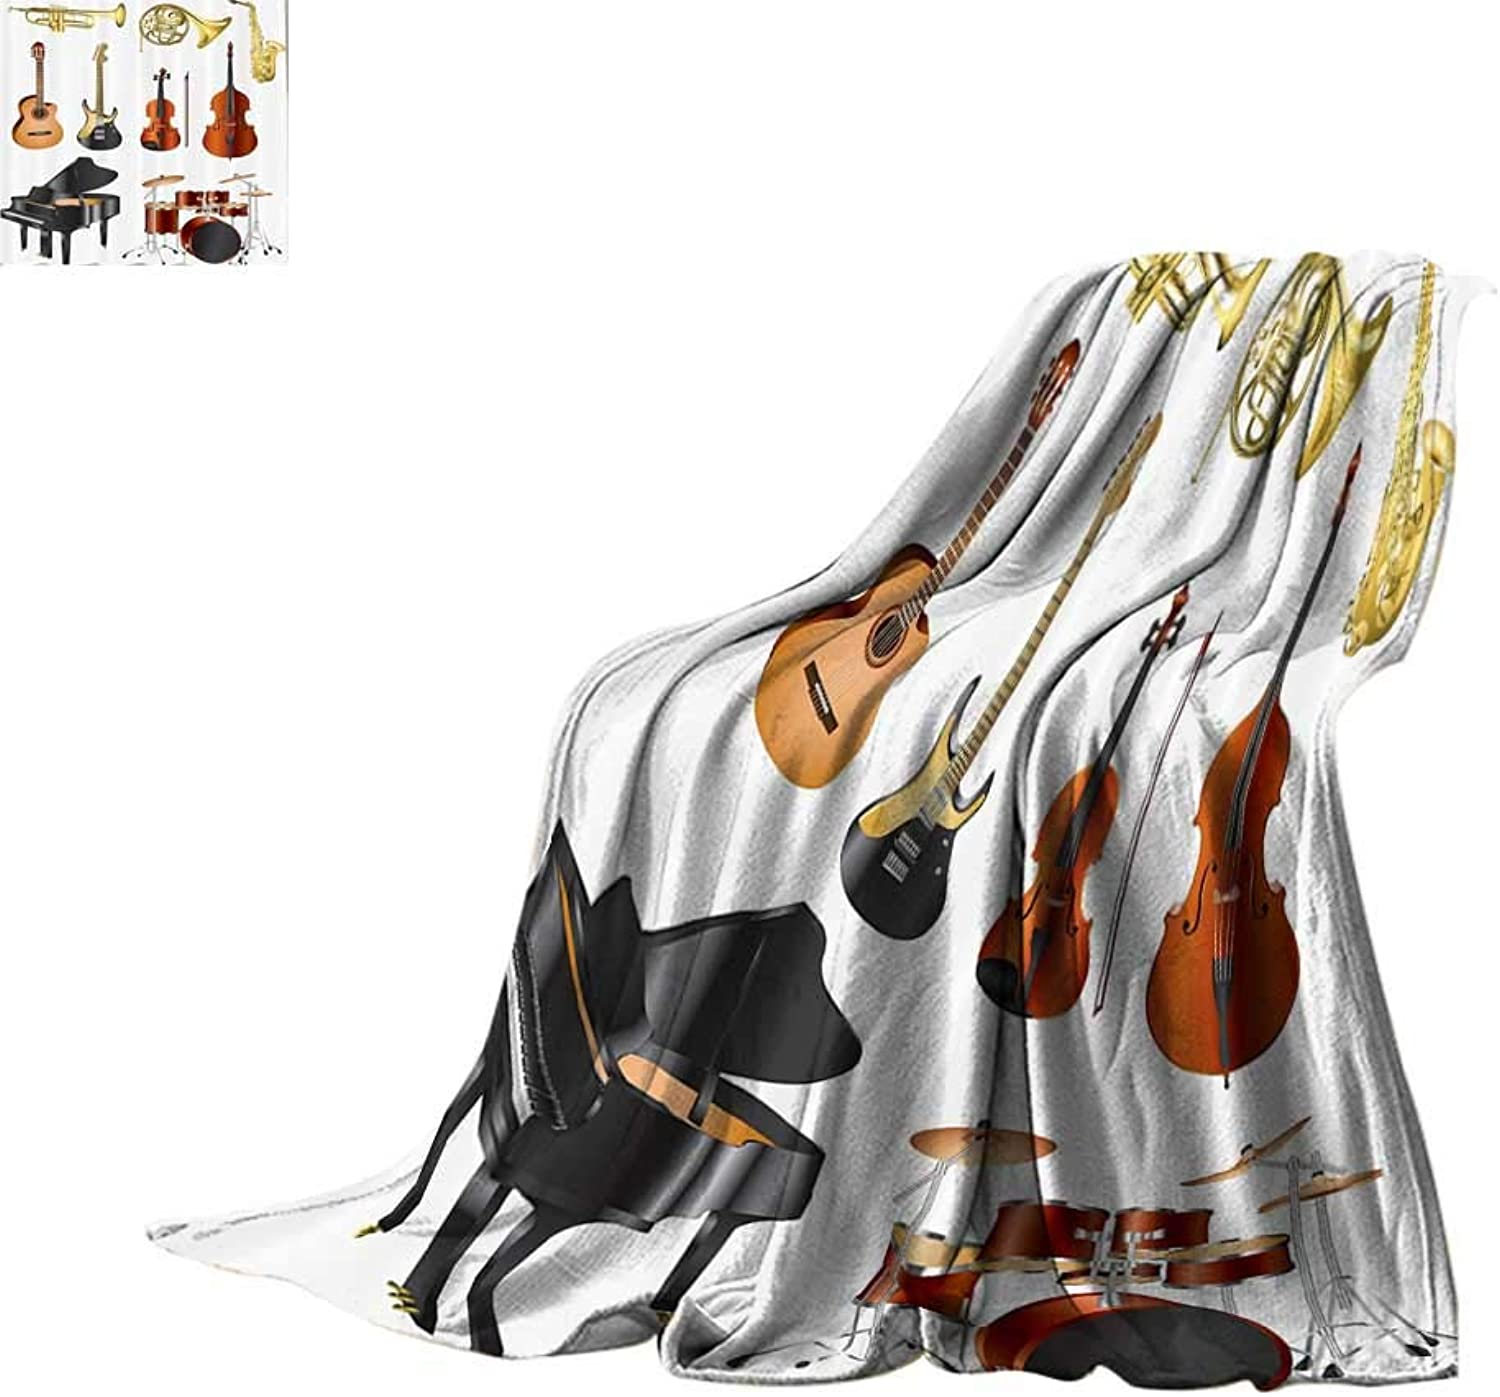 Throw Blanket Music Decor,Collection of Musical Instruments Symphony Orchestra Concert Composition Print Summer Quilt Comforter Bed or Couch 60 x35